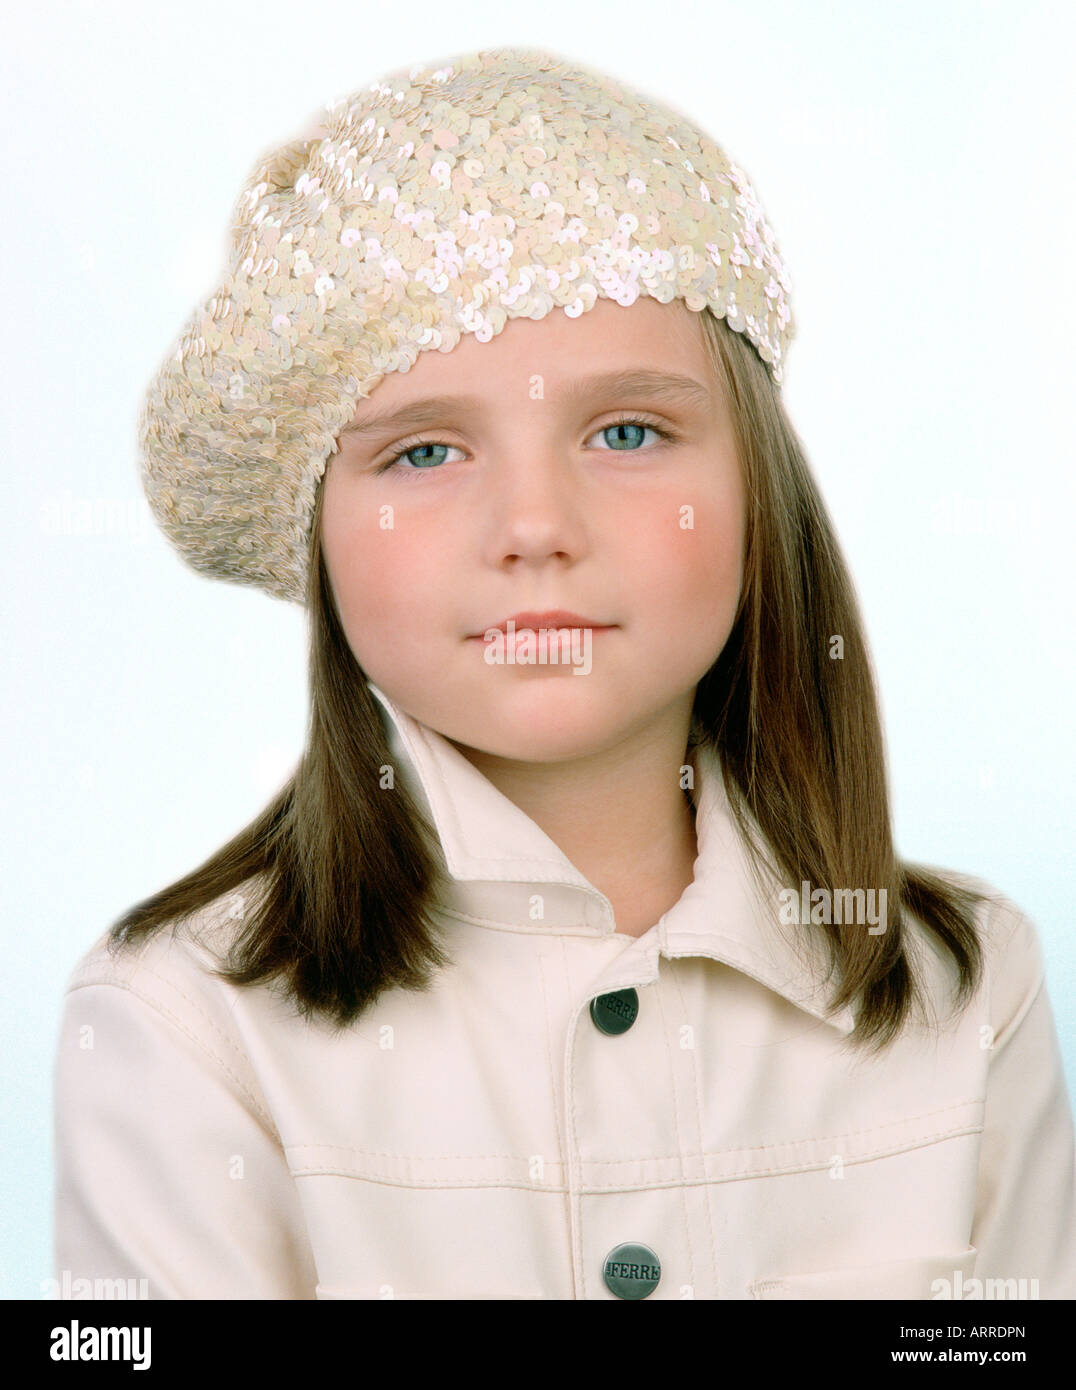 A young girl wearing makeup in a sequin beret - Stock Image